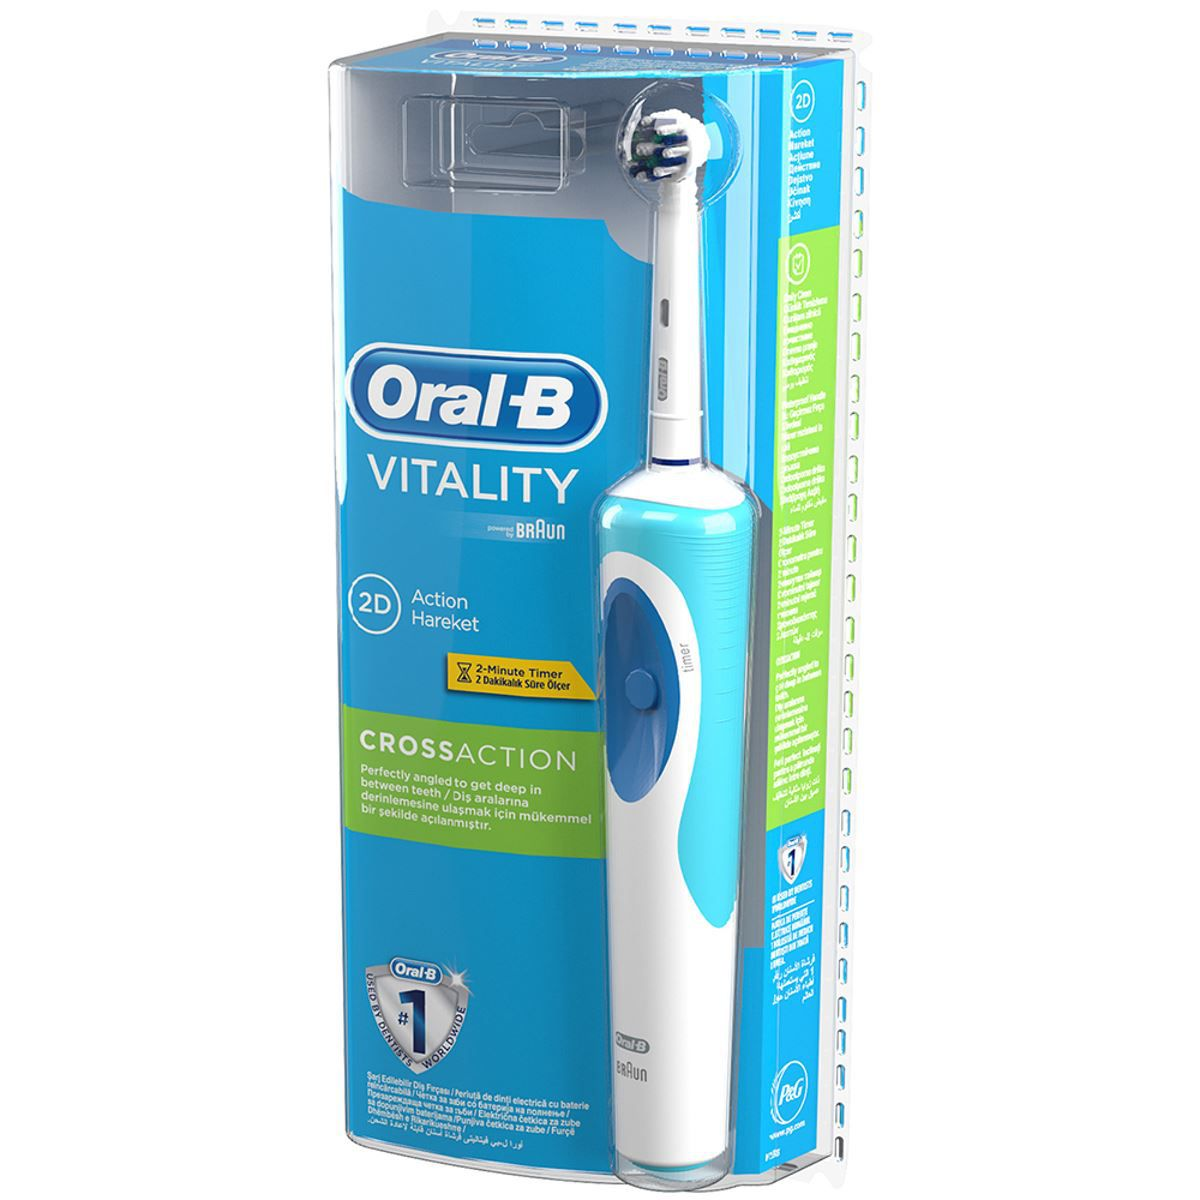 oral b oral b vitality crossaction electric toothbrush. Black Bedroom Furniture Sets. Home Design Ideas